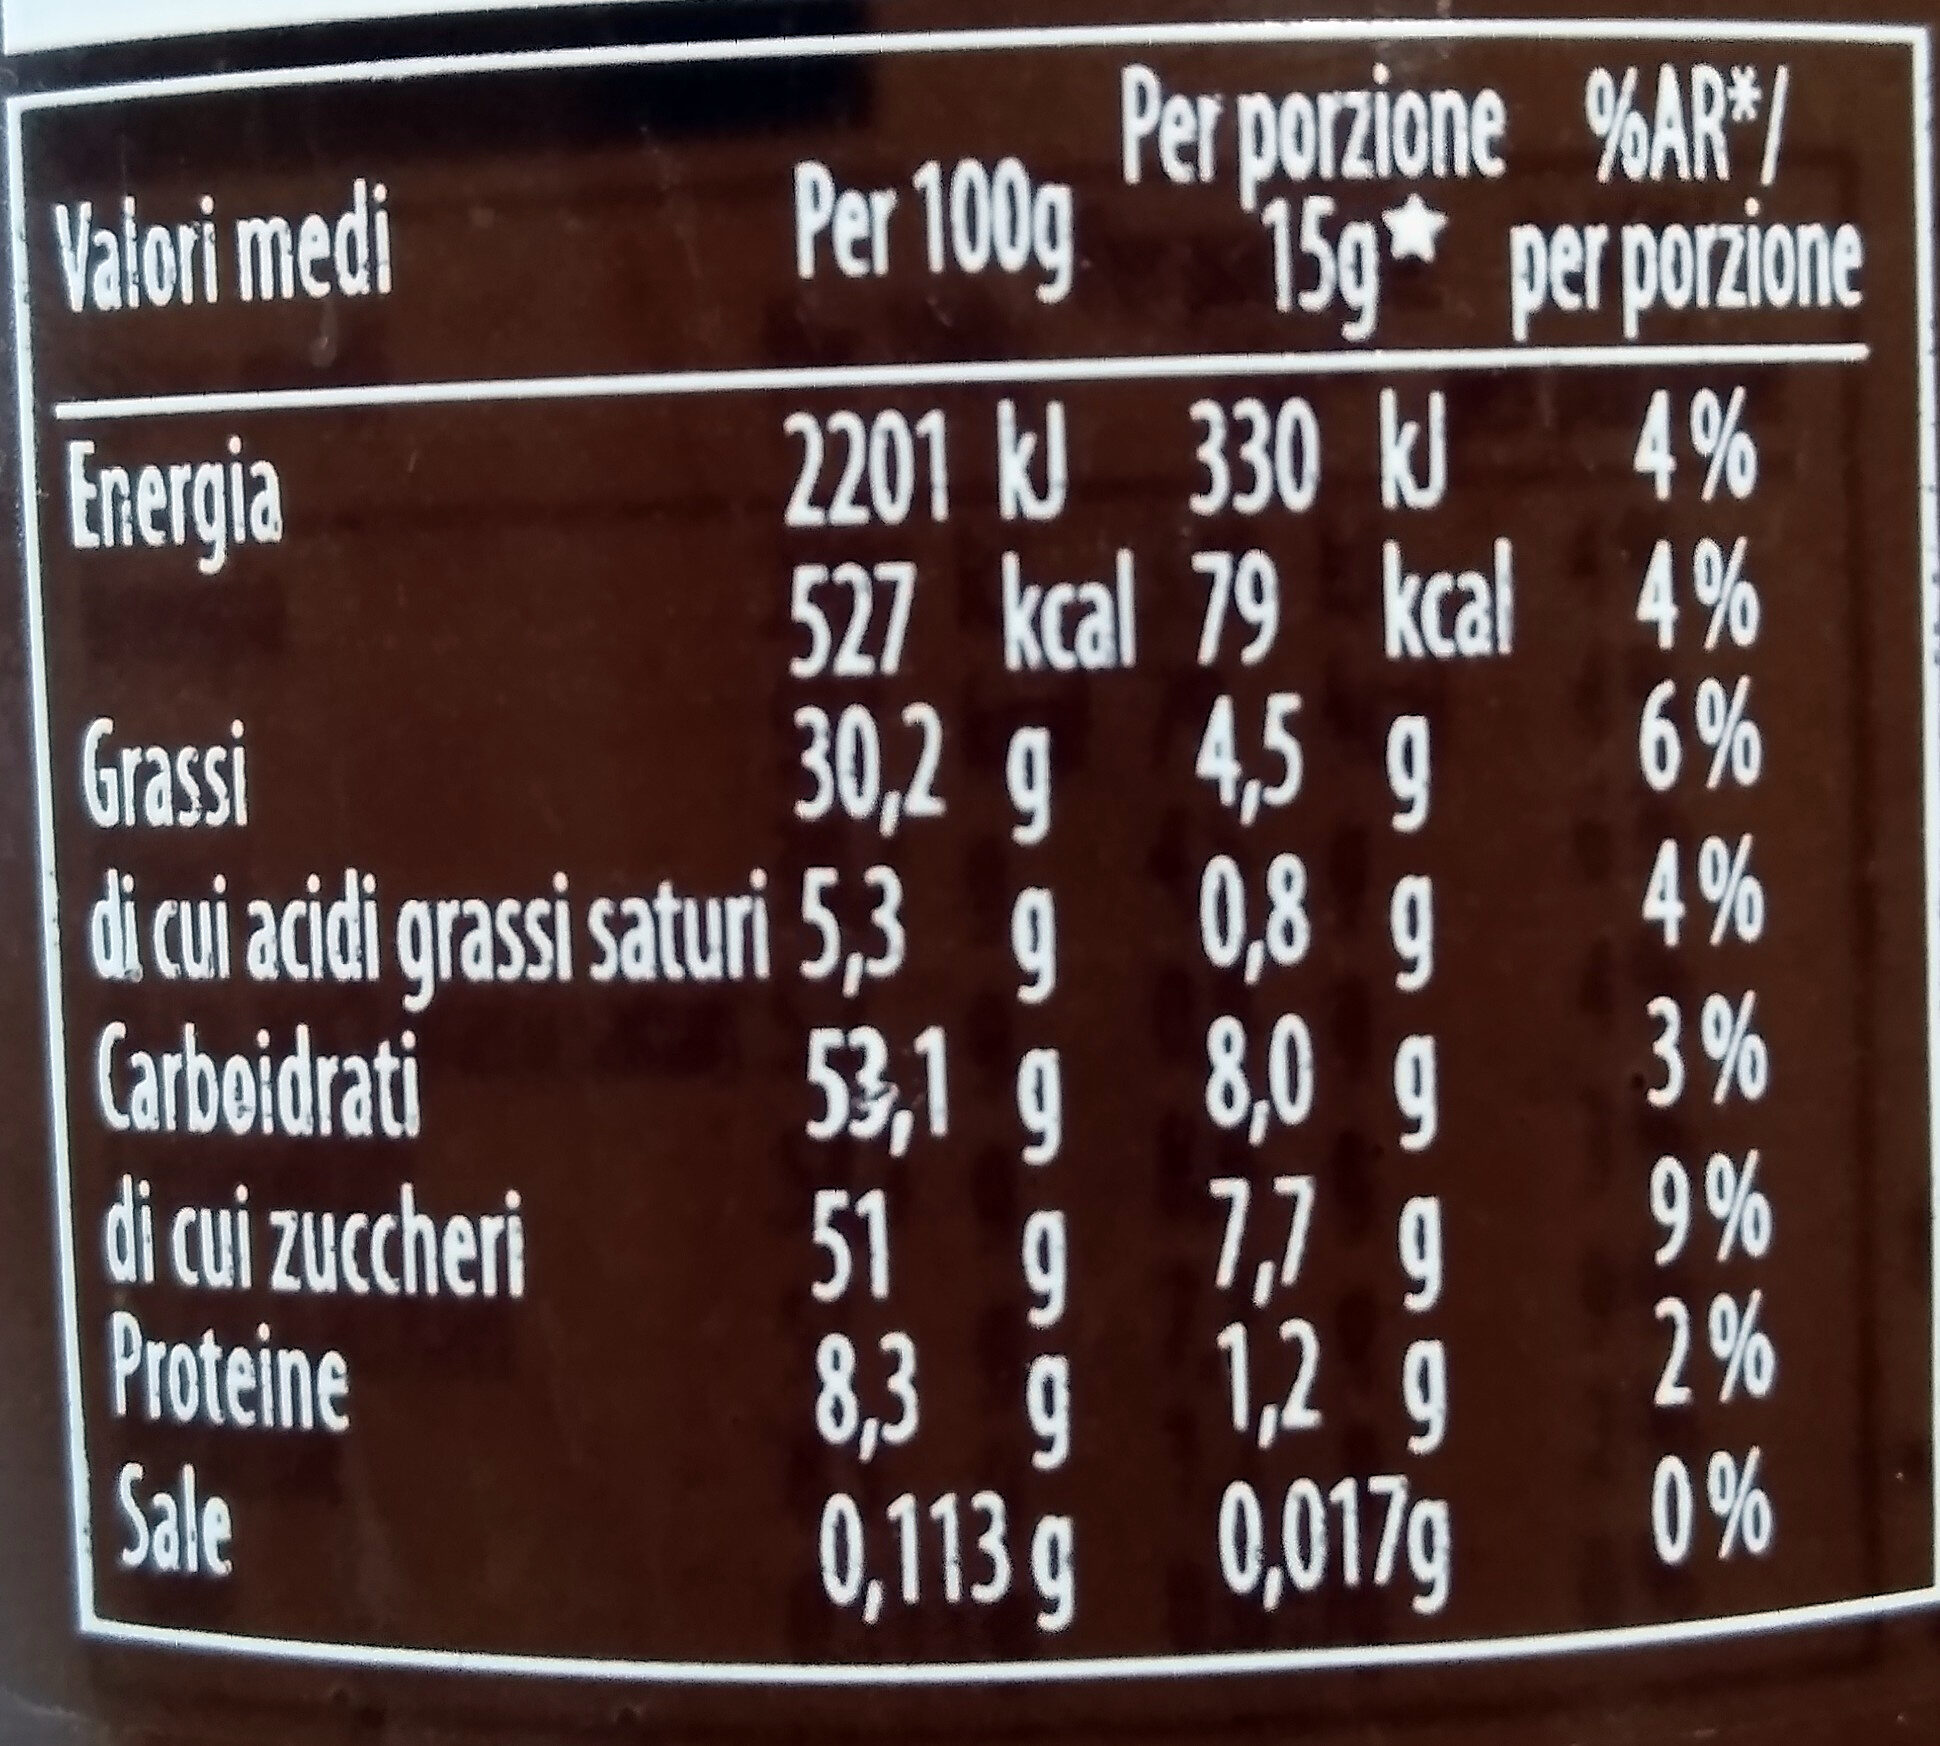 Pan di stelle crema - Nutrition facts